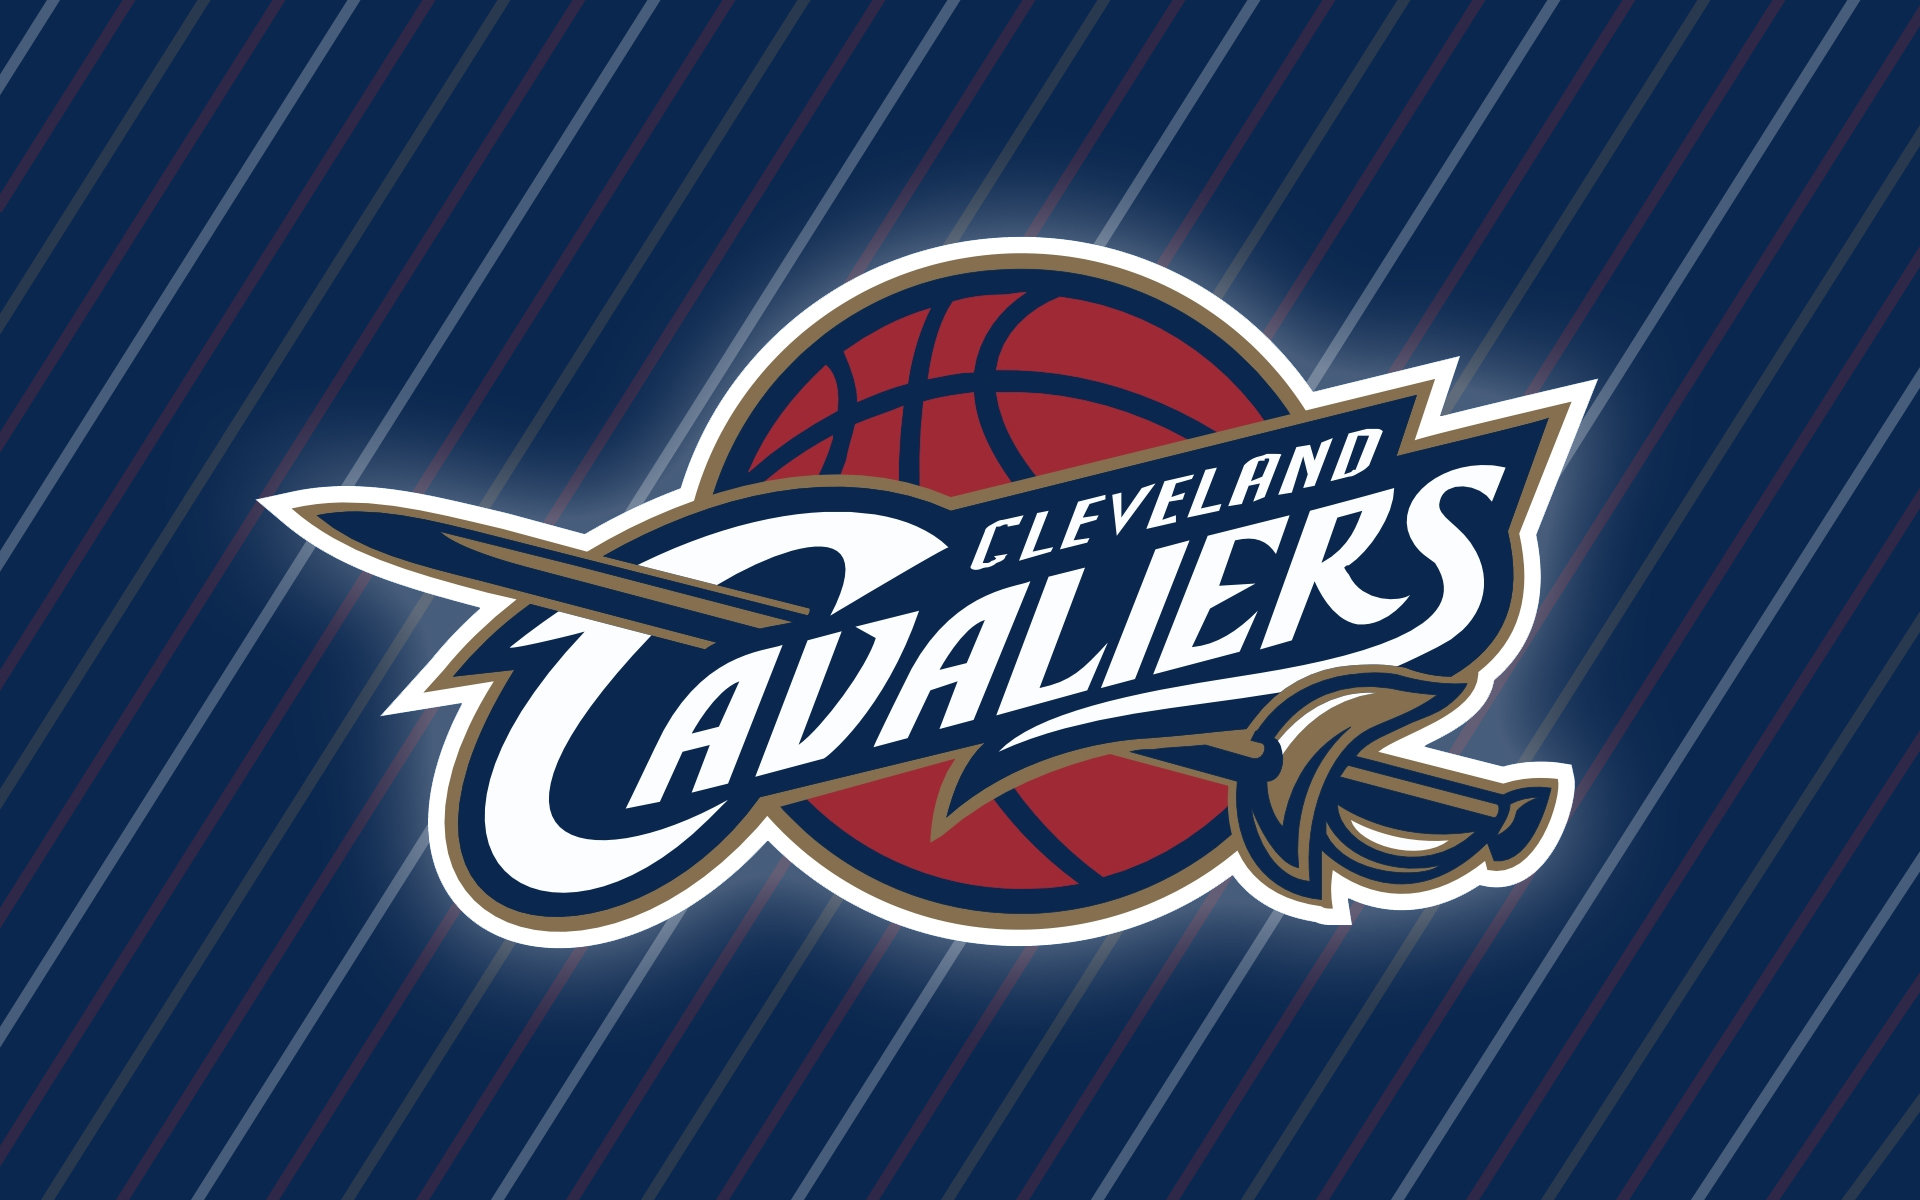 Cleveland Cavaliers (CAVS) wallpapers HD for desktop ...